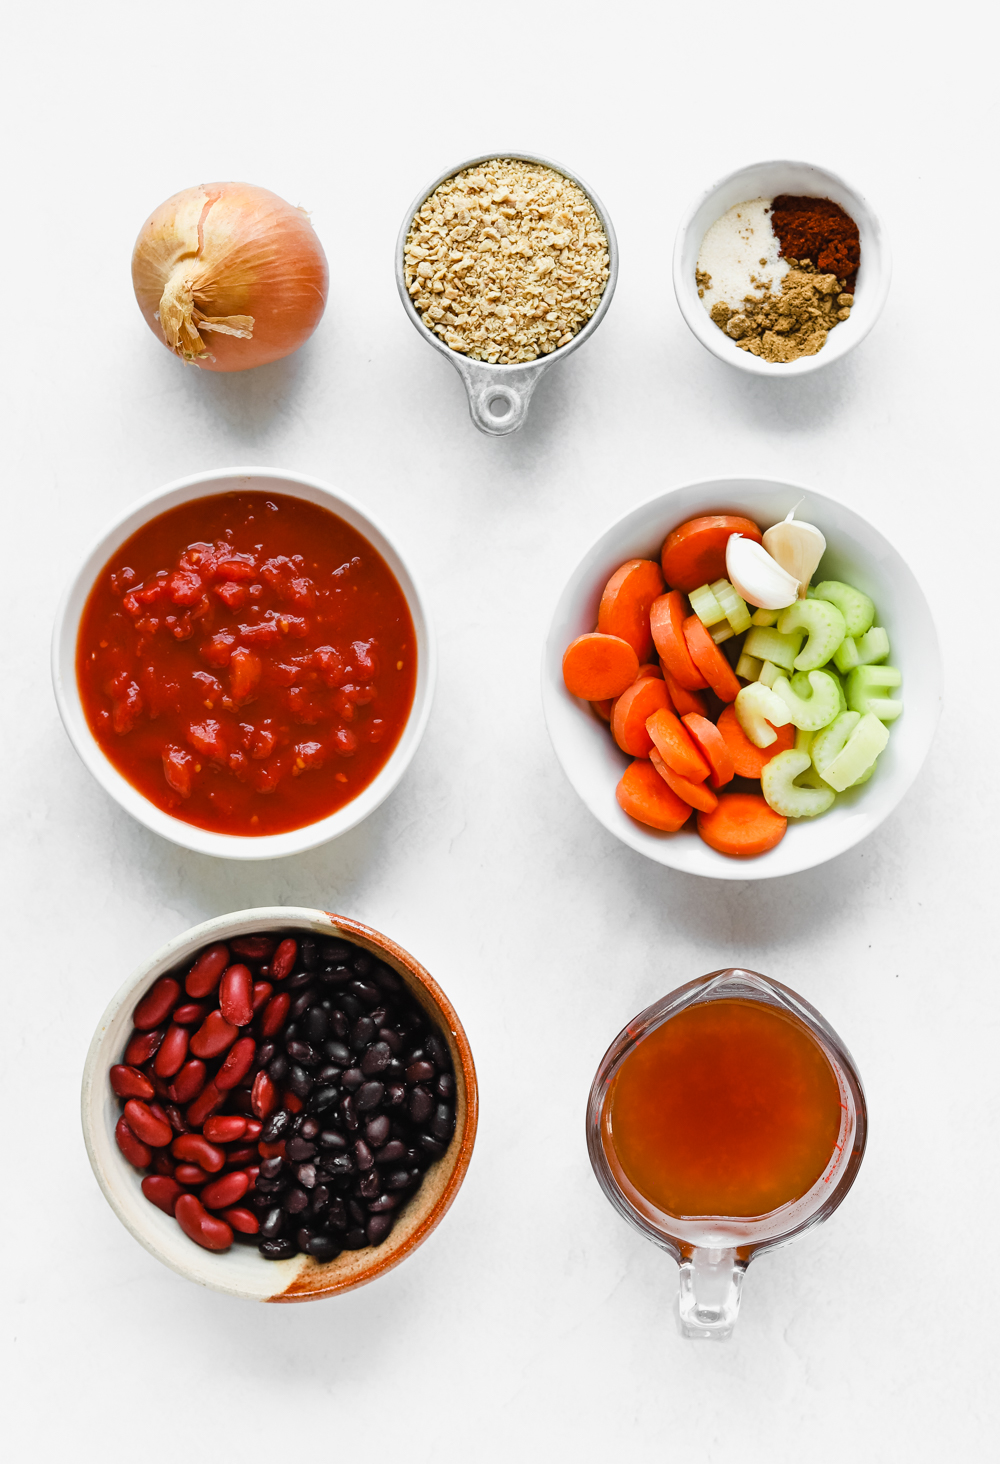 Ingredients to make meaty vegan TVP chili: kidney beans, black beans, textured vegetable protein, carrots, celery, vegetable broth, crushed red tomatoes, onion, garlic, onion powder, chili powder, and cumin powder.